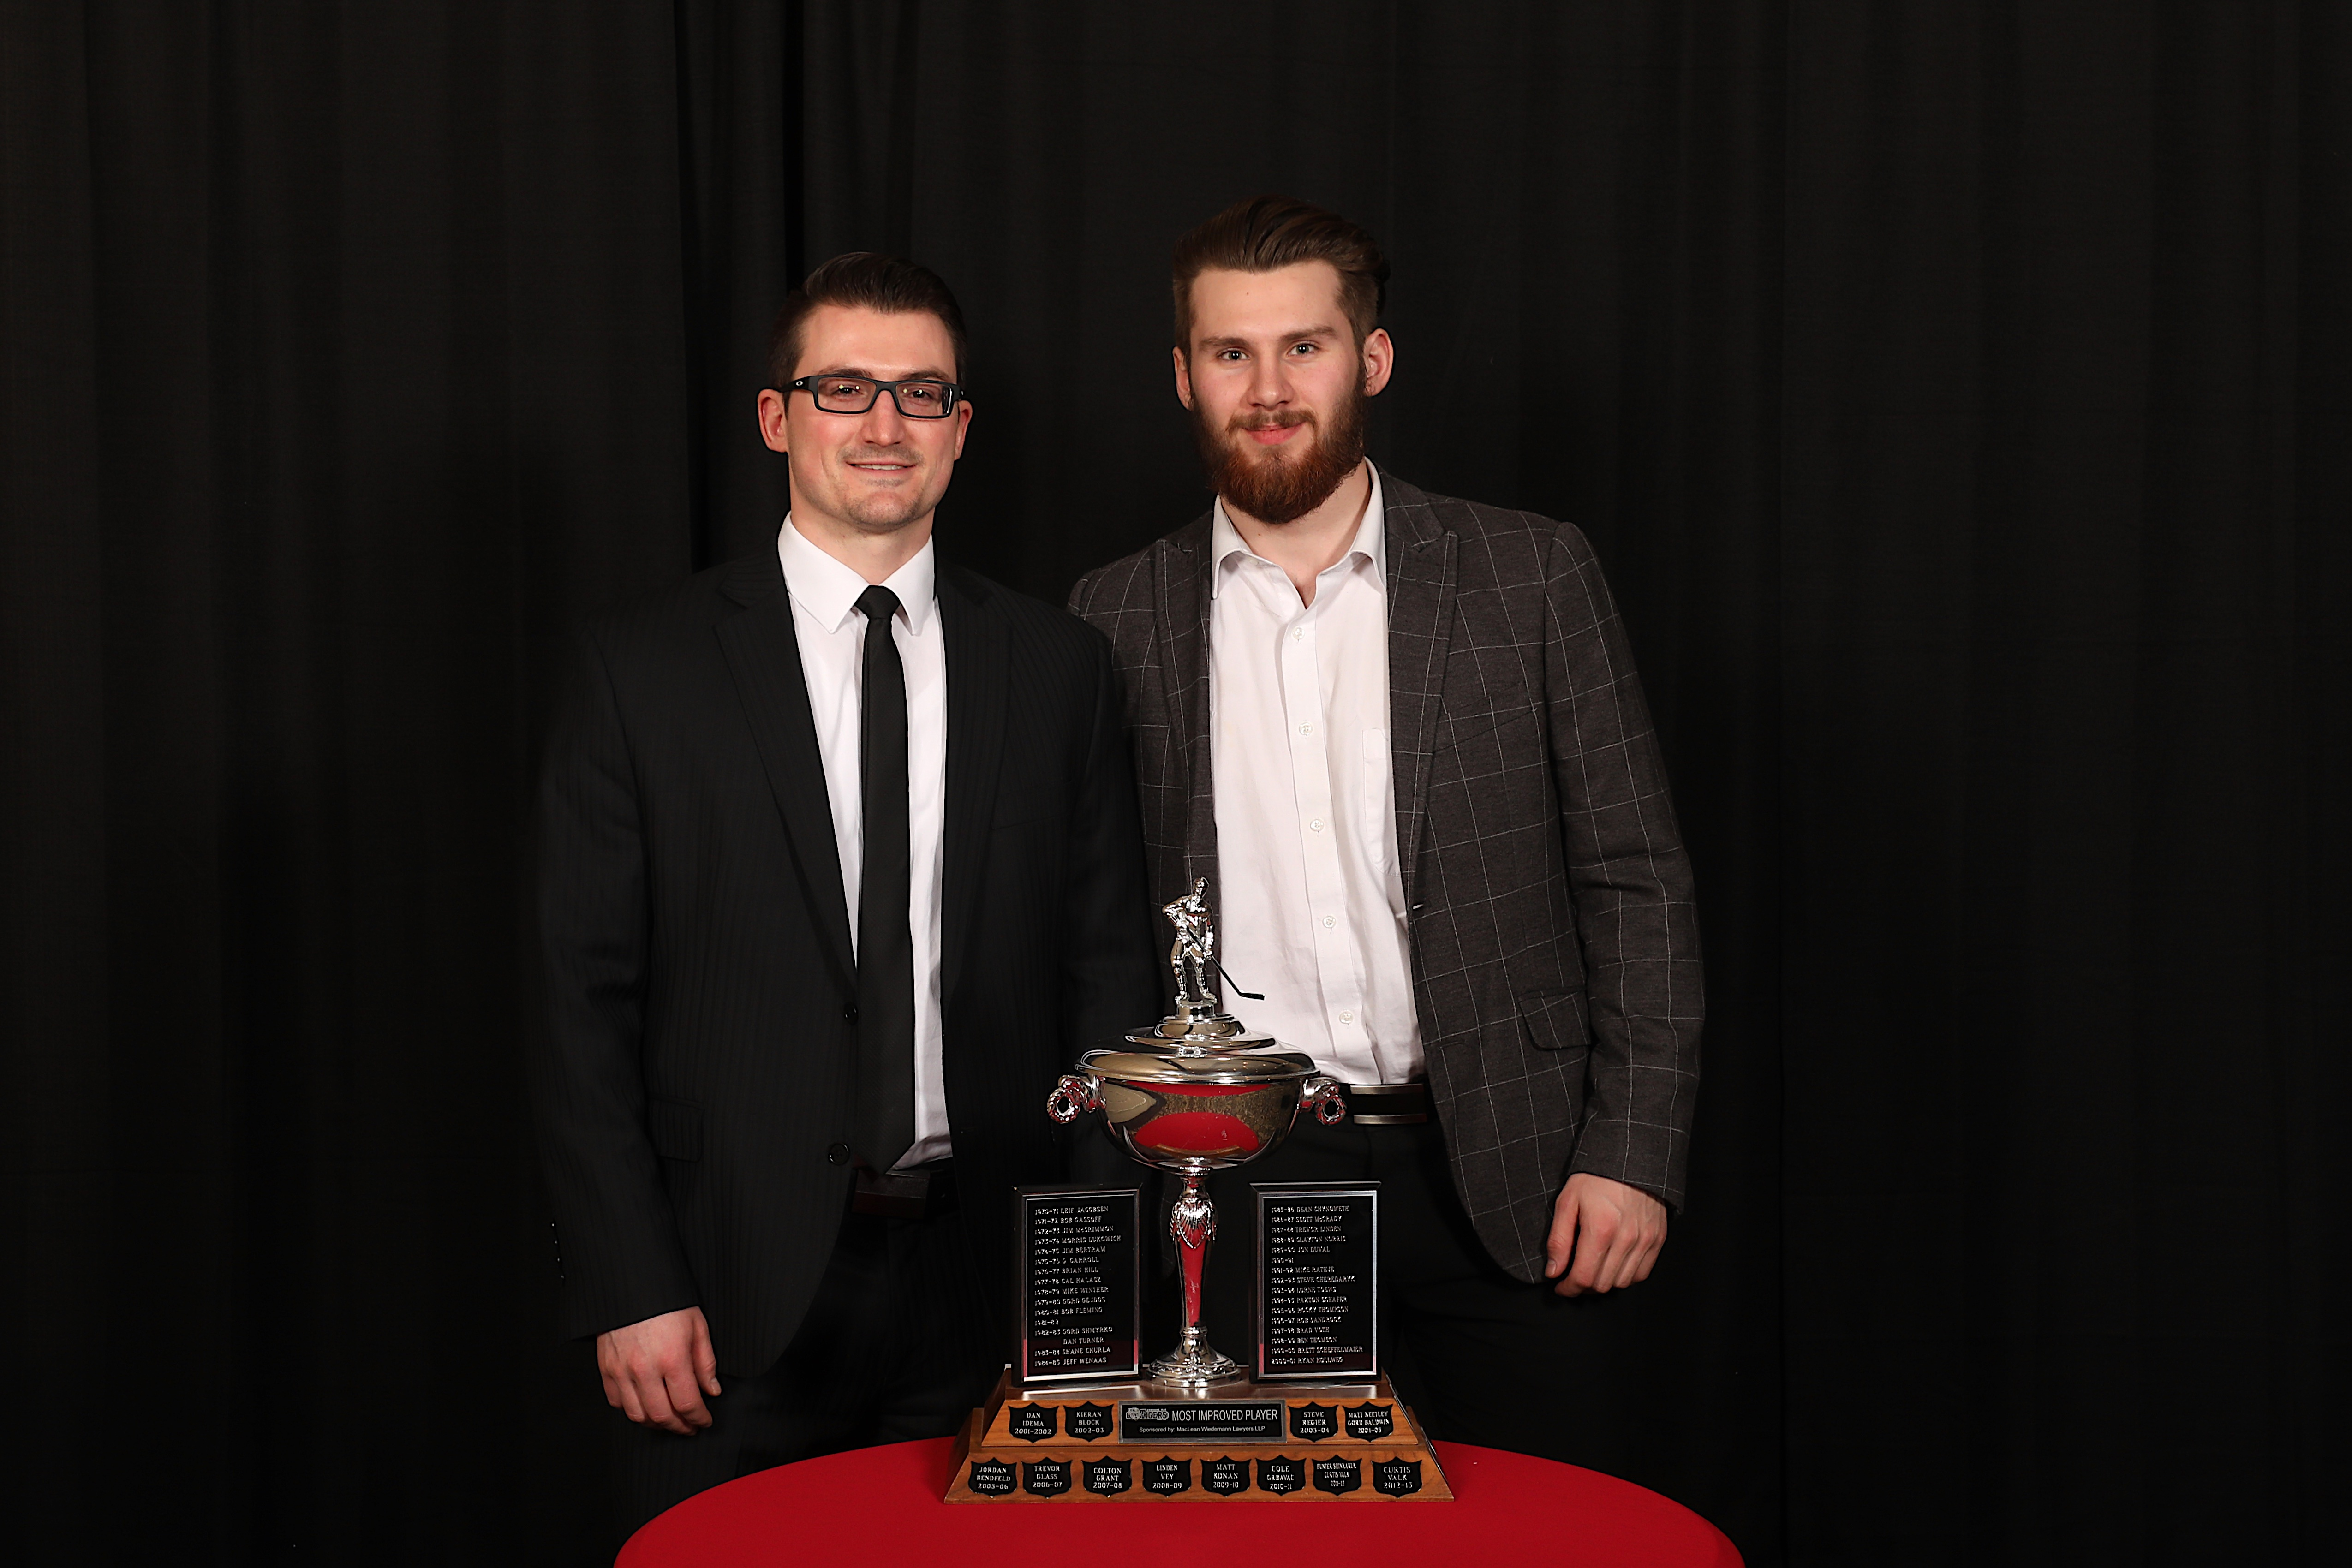 AC Joe Frazer presented the MacLean Wiedemann Lawyers LLP Most Improved Player to Ryan Jevne